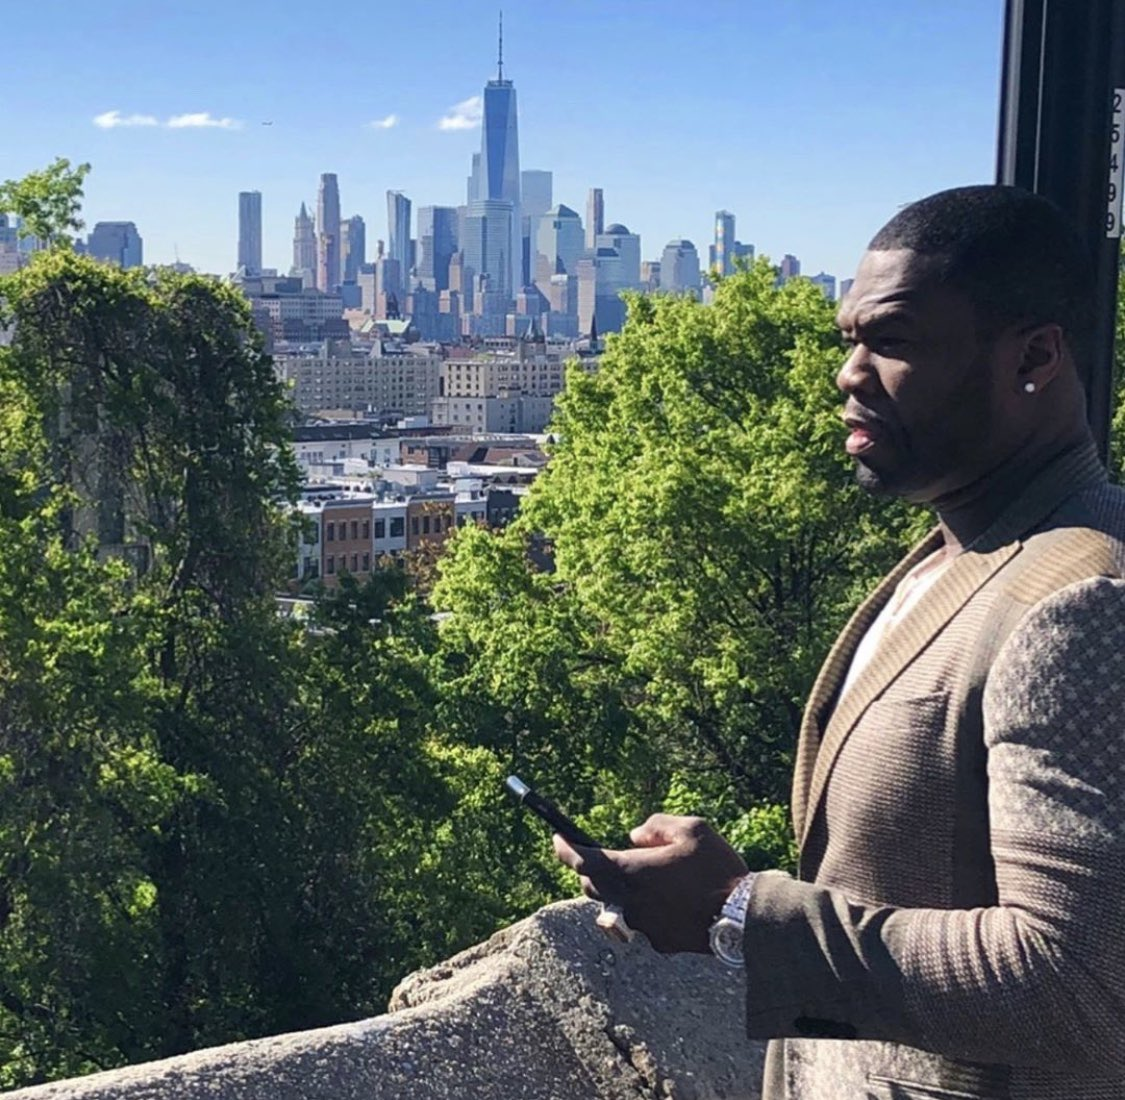 They say this is a Big rich town, why I gotta come from the poorest part. POWER Season 6  aug 25 #lecheminduroi #bransoncognac #bellator